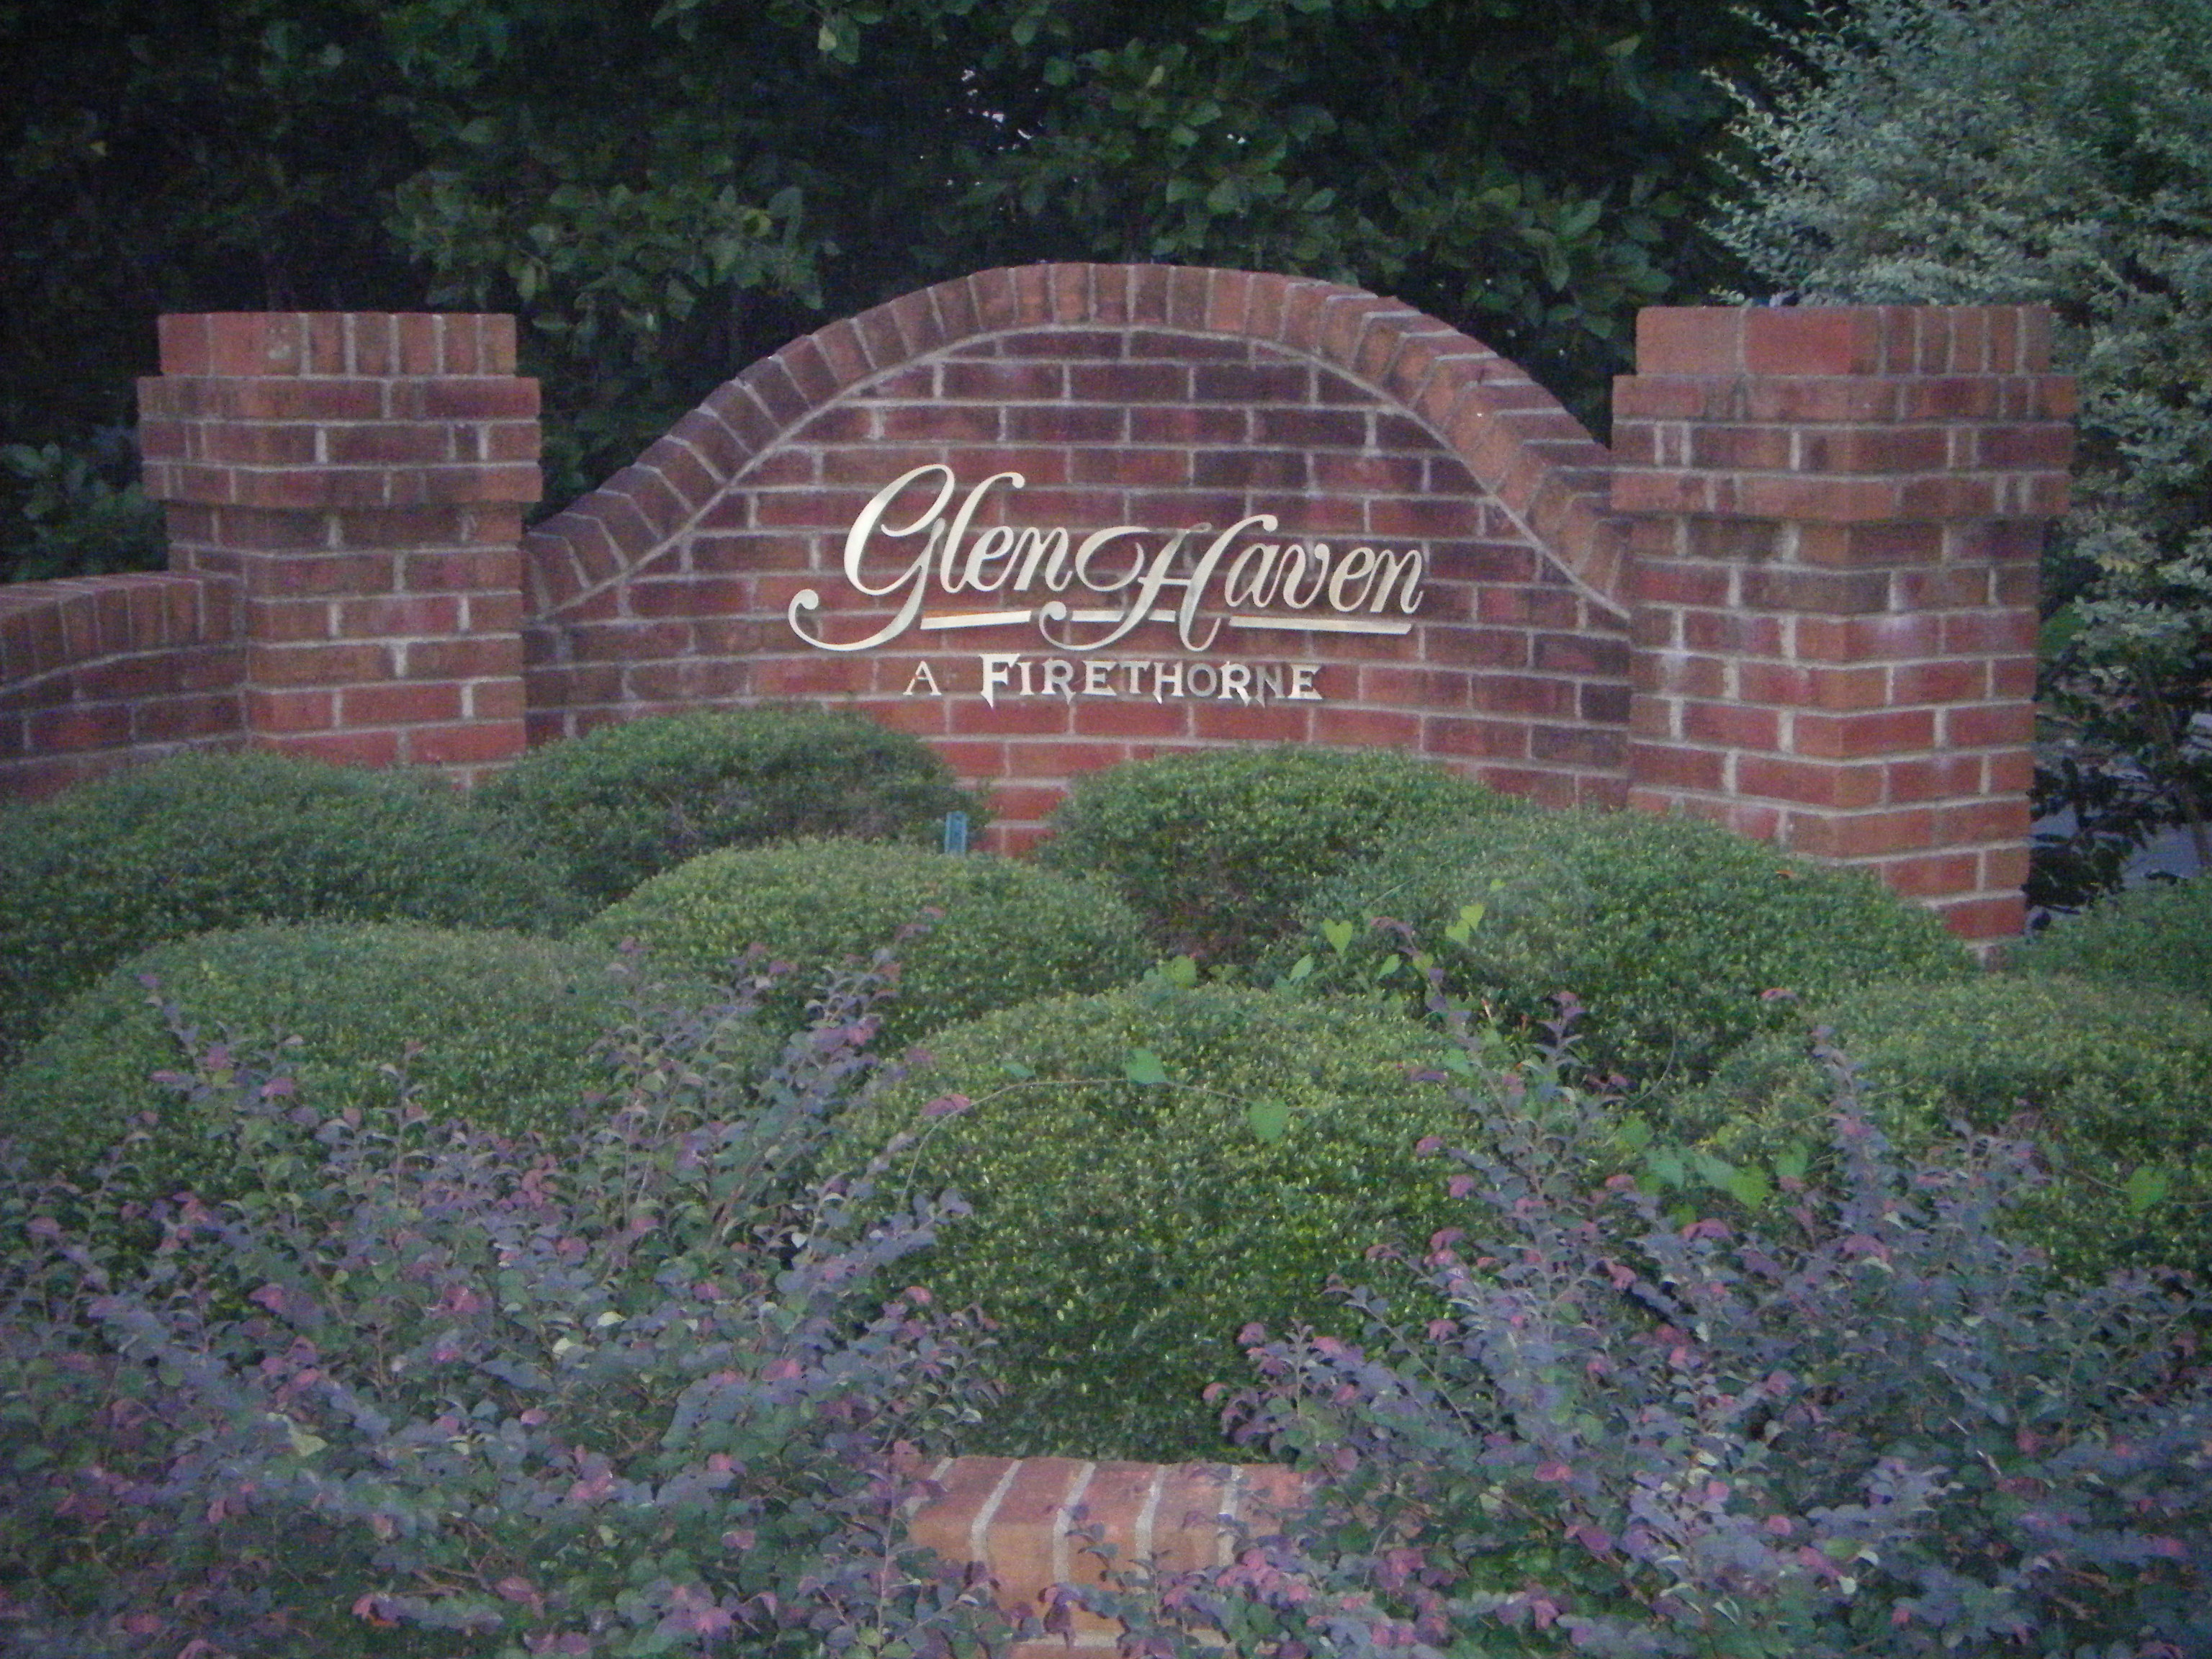 Glenhaven at Firethorne